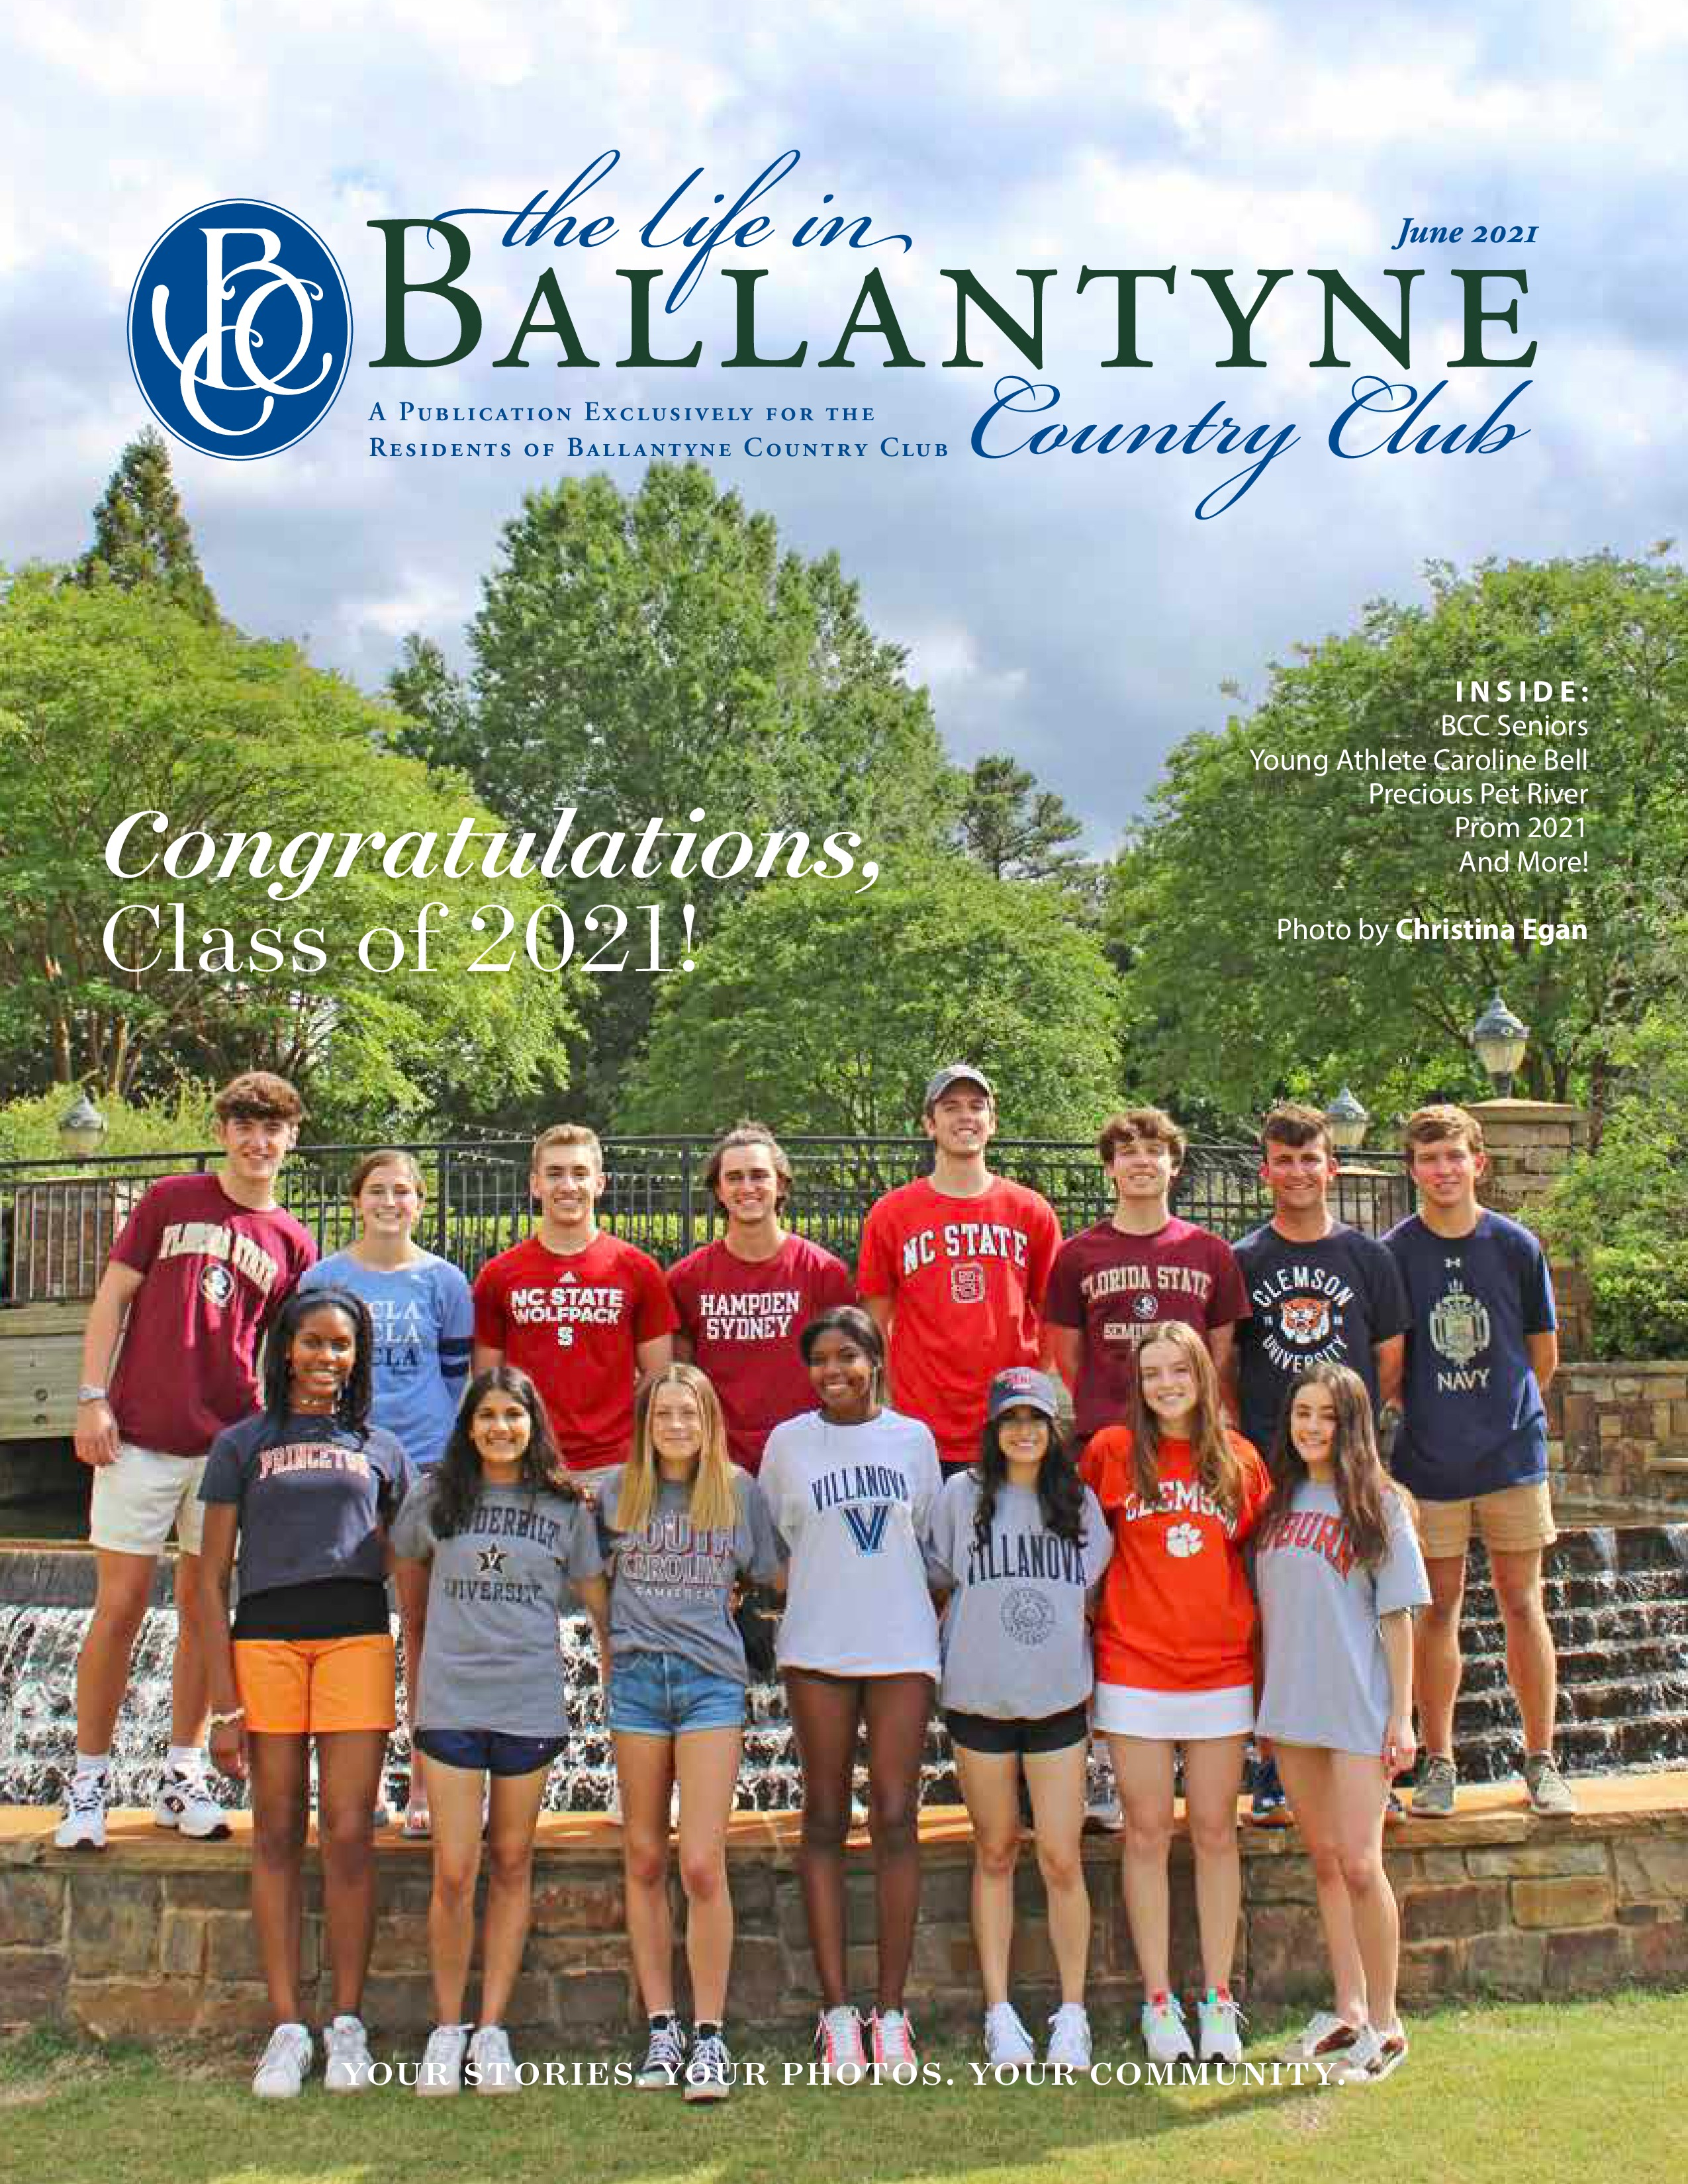 The Life in Ballantyne Country Club 2021-06-01